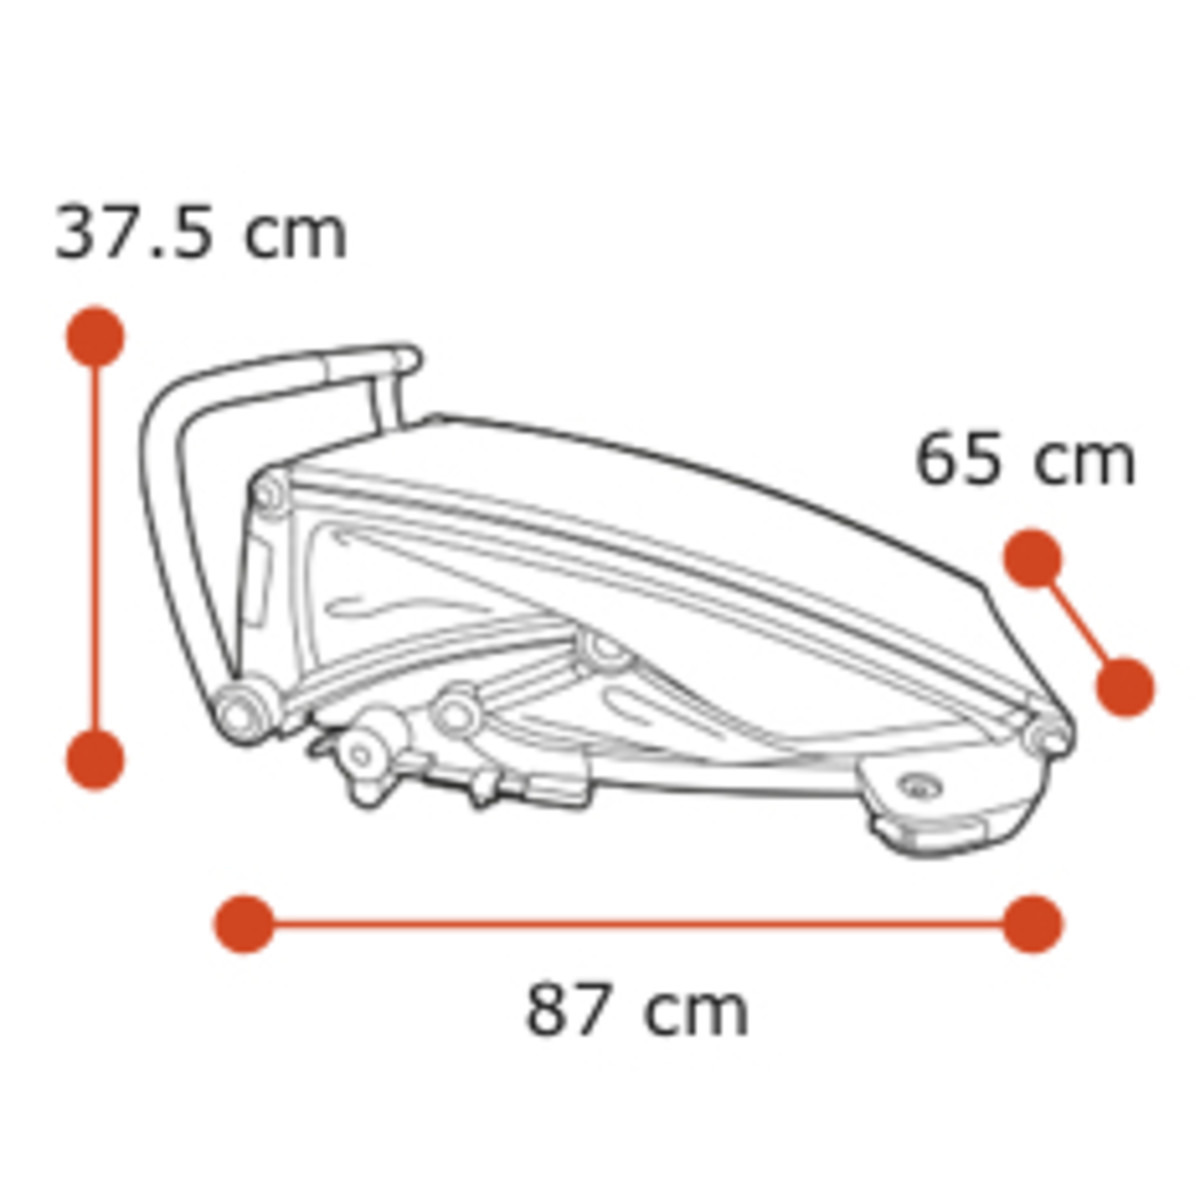 Thule Chariot Cross - Folded dimensions